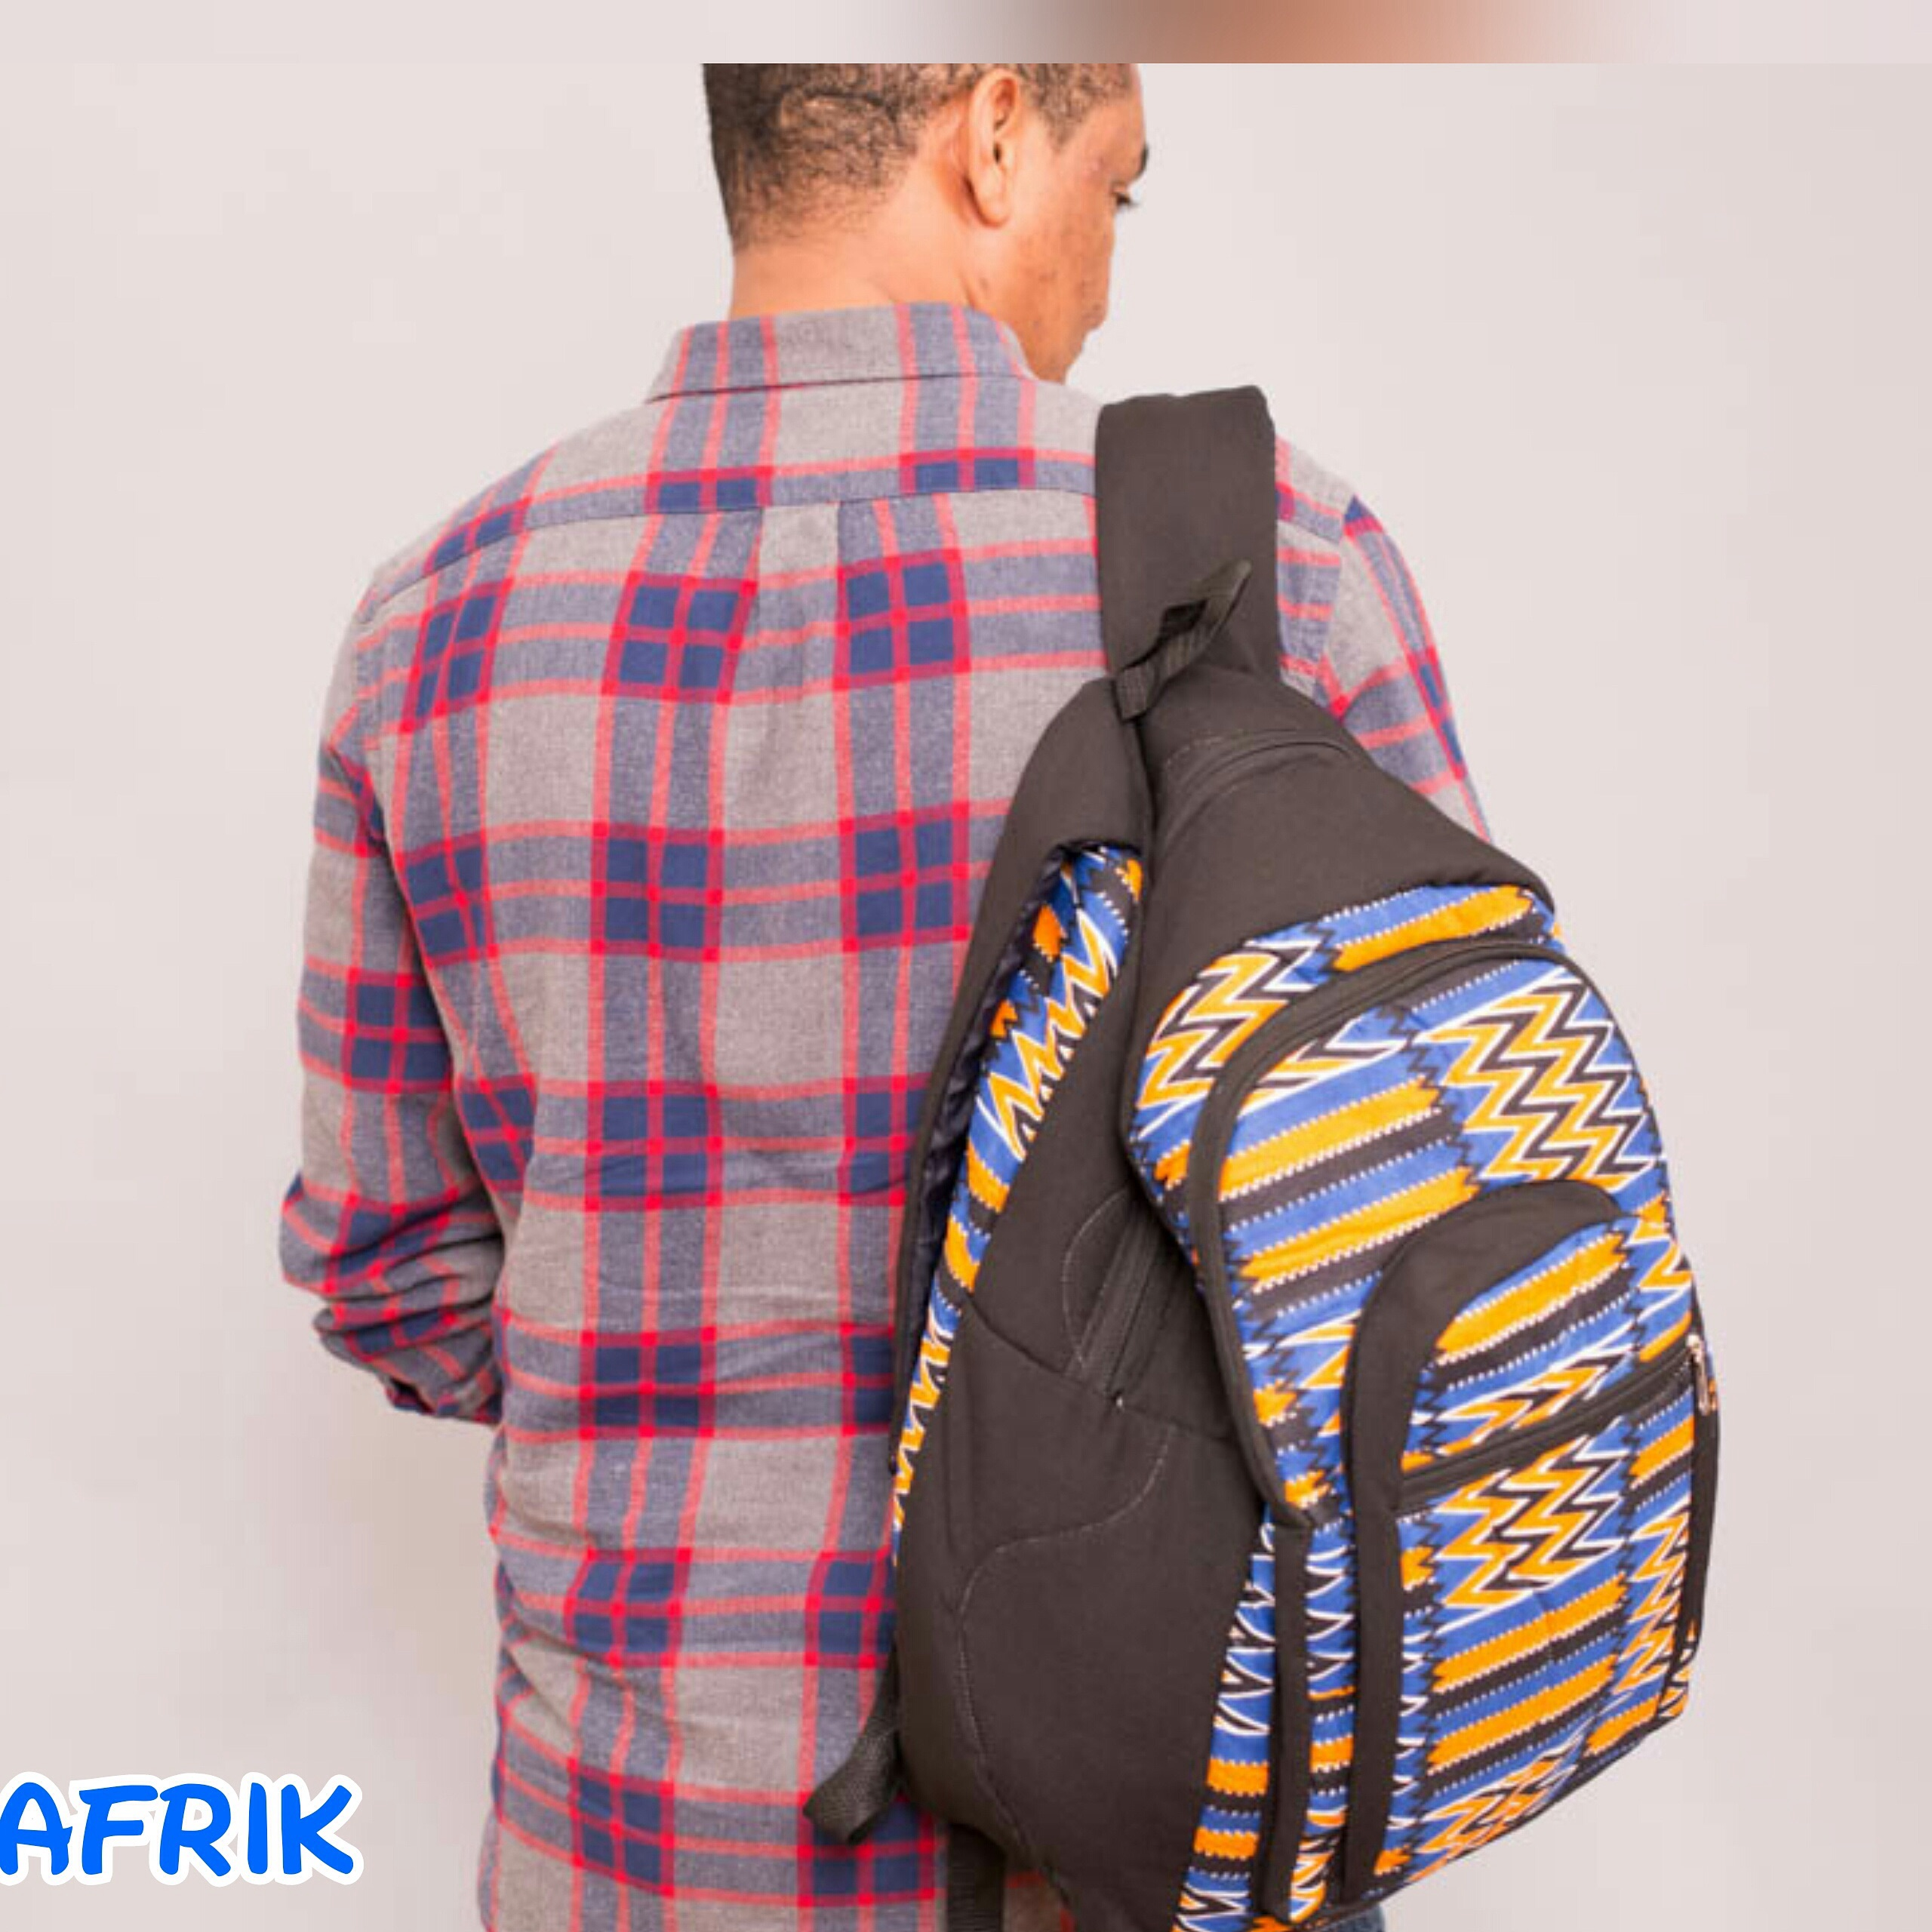 african kente book bags magkoafrik online store powered by